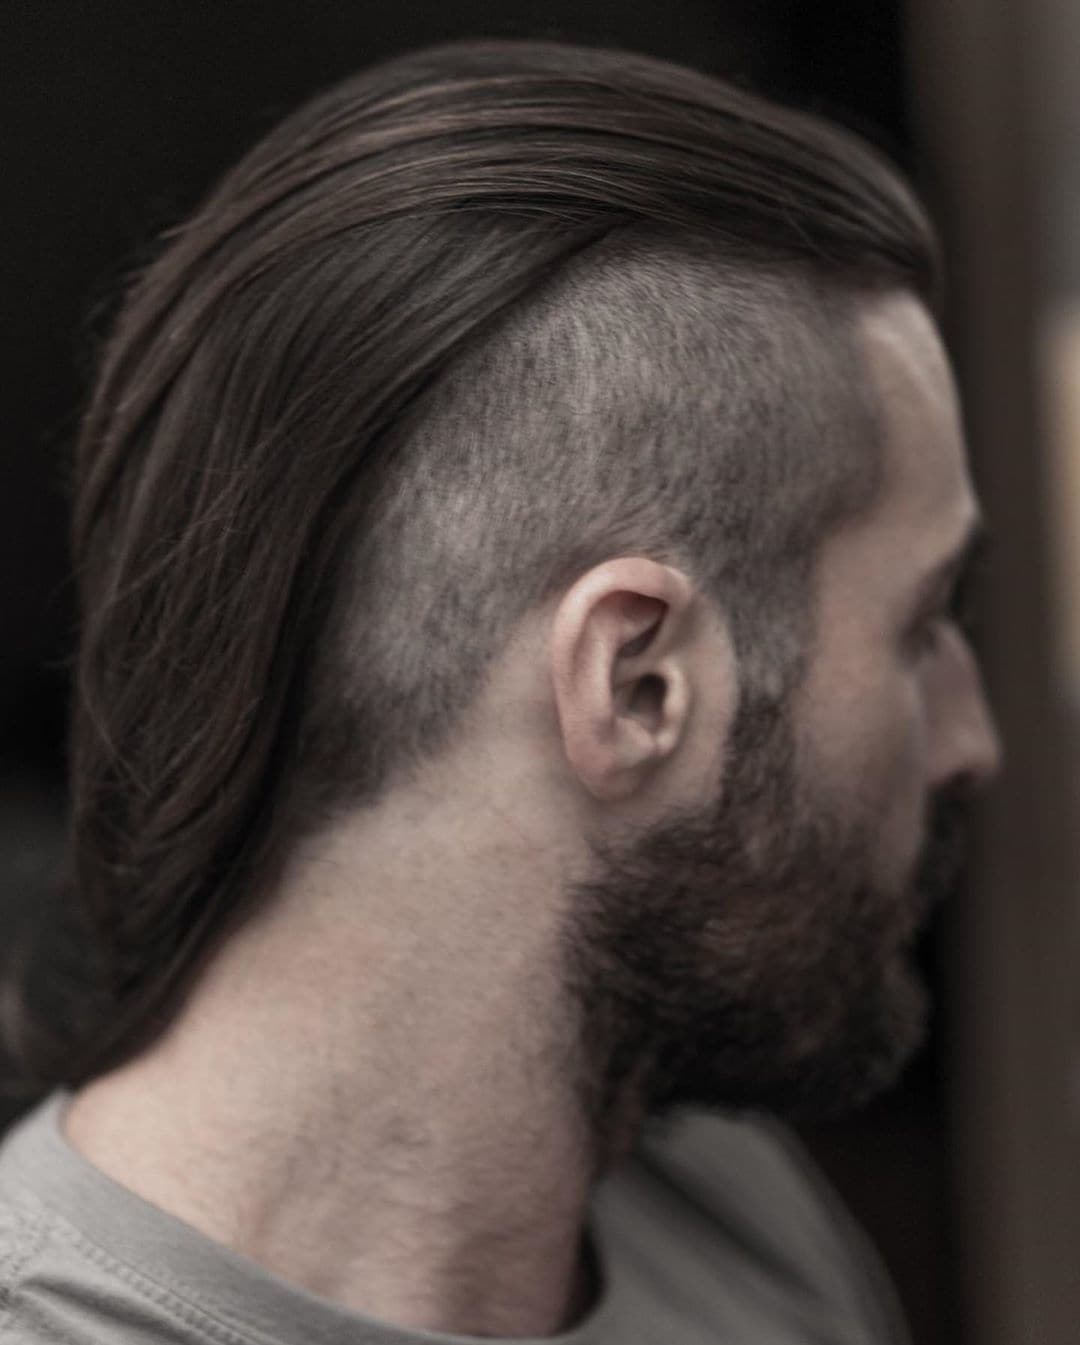 Man with long shaved hair with buzzed undercut